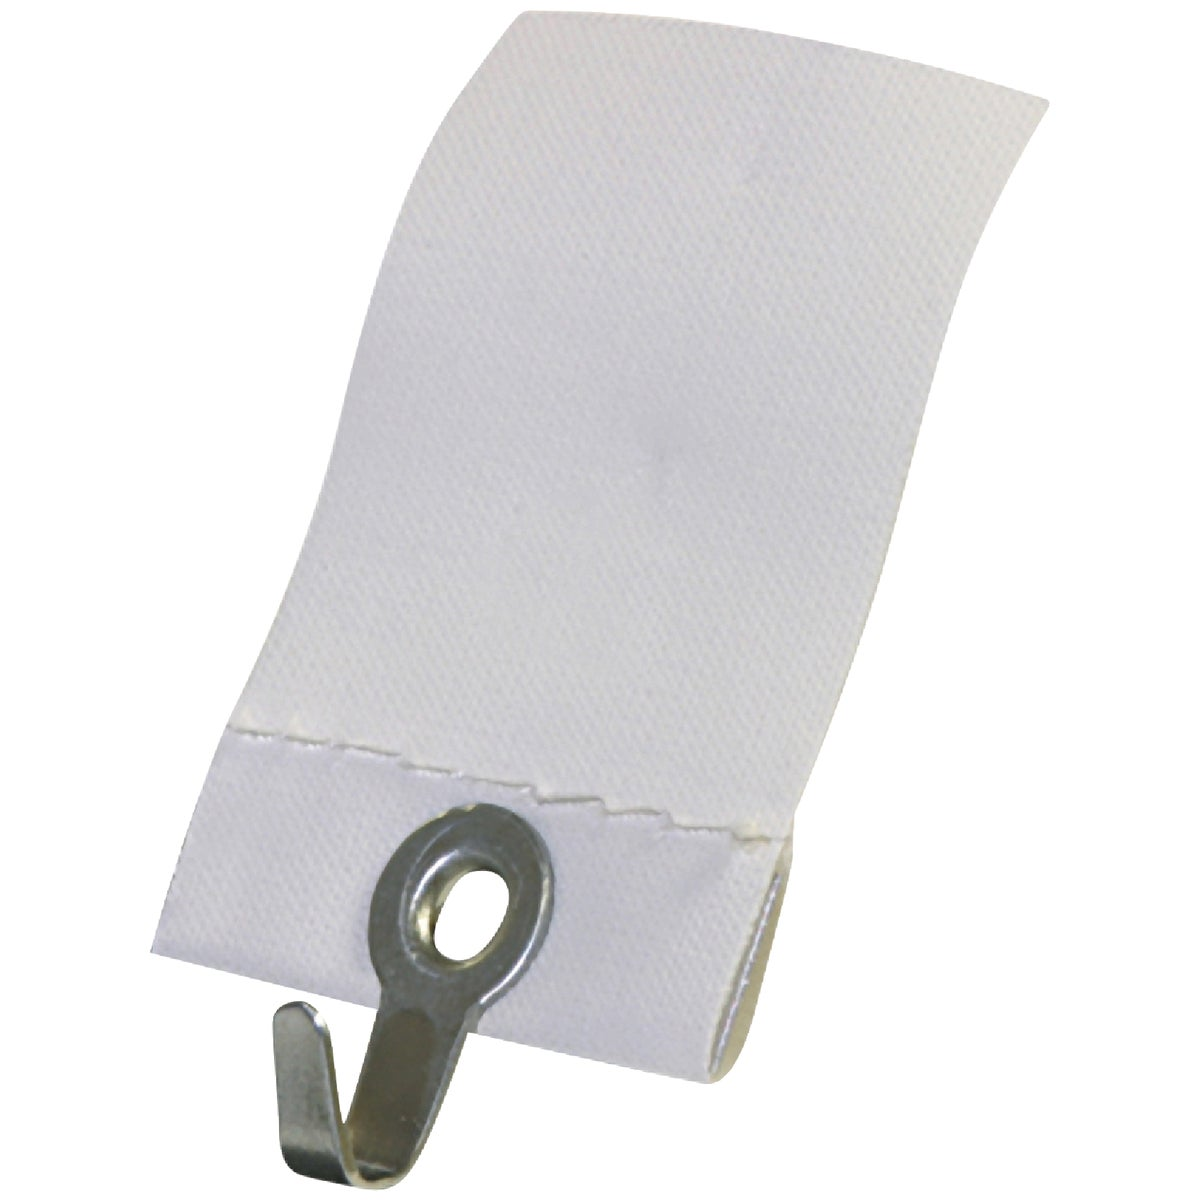 ADHESIVE PICTURE HANGER - 121148 by Hillman Fastener